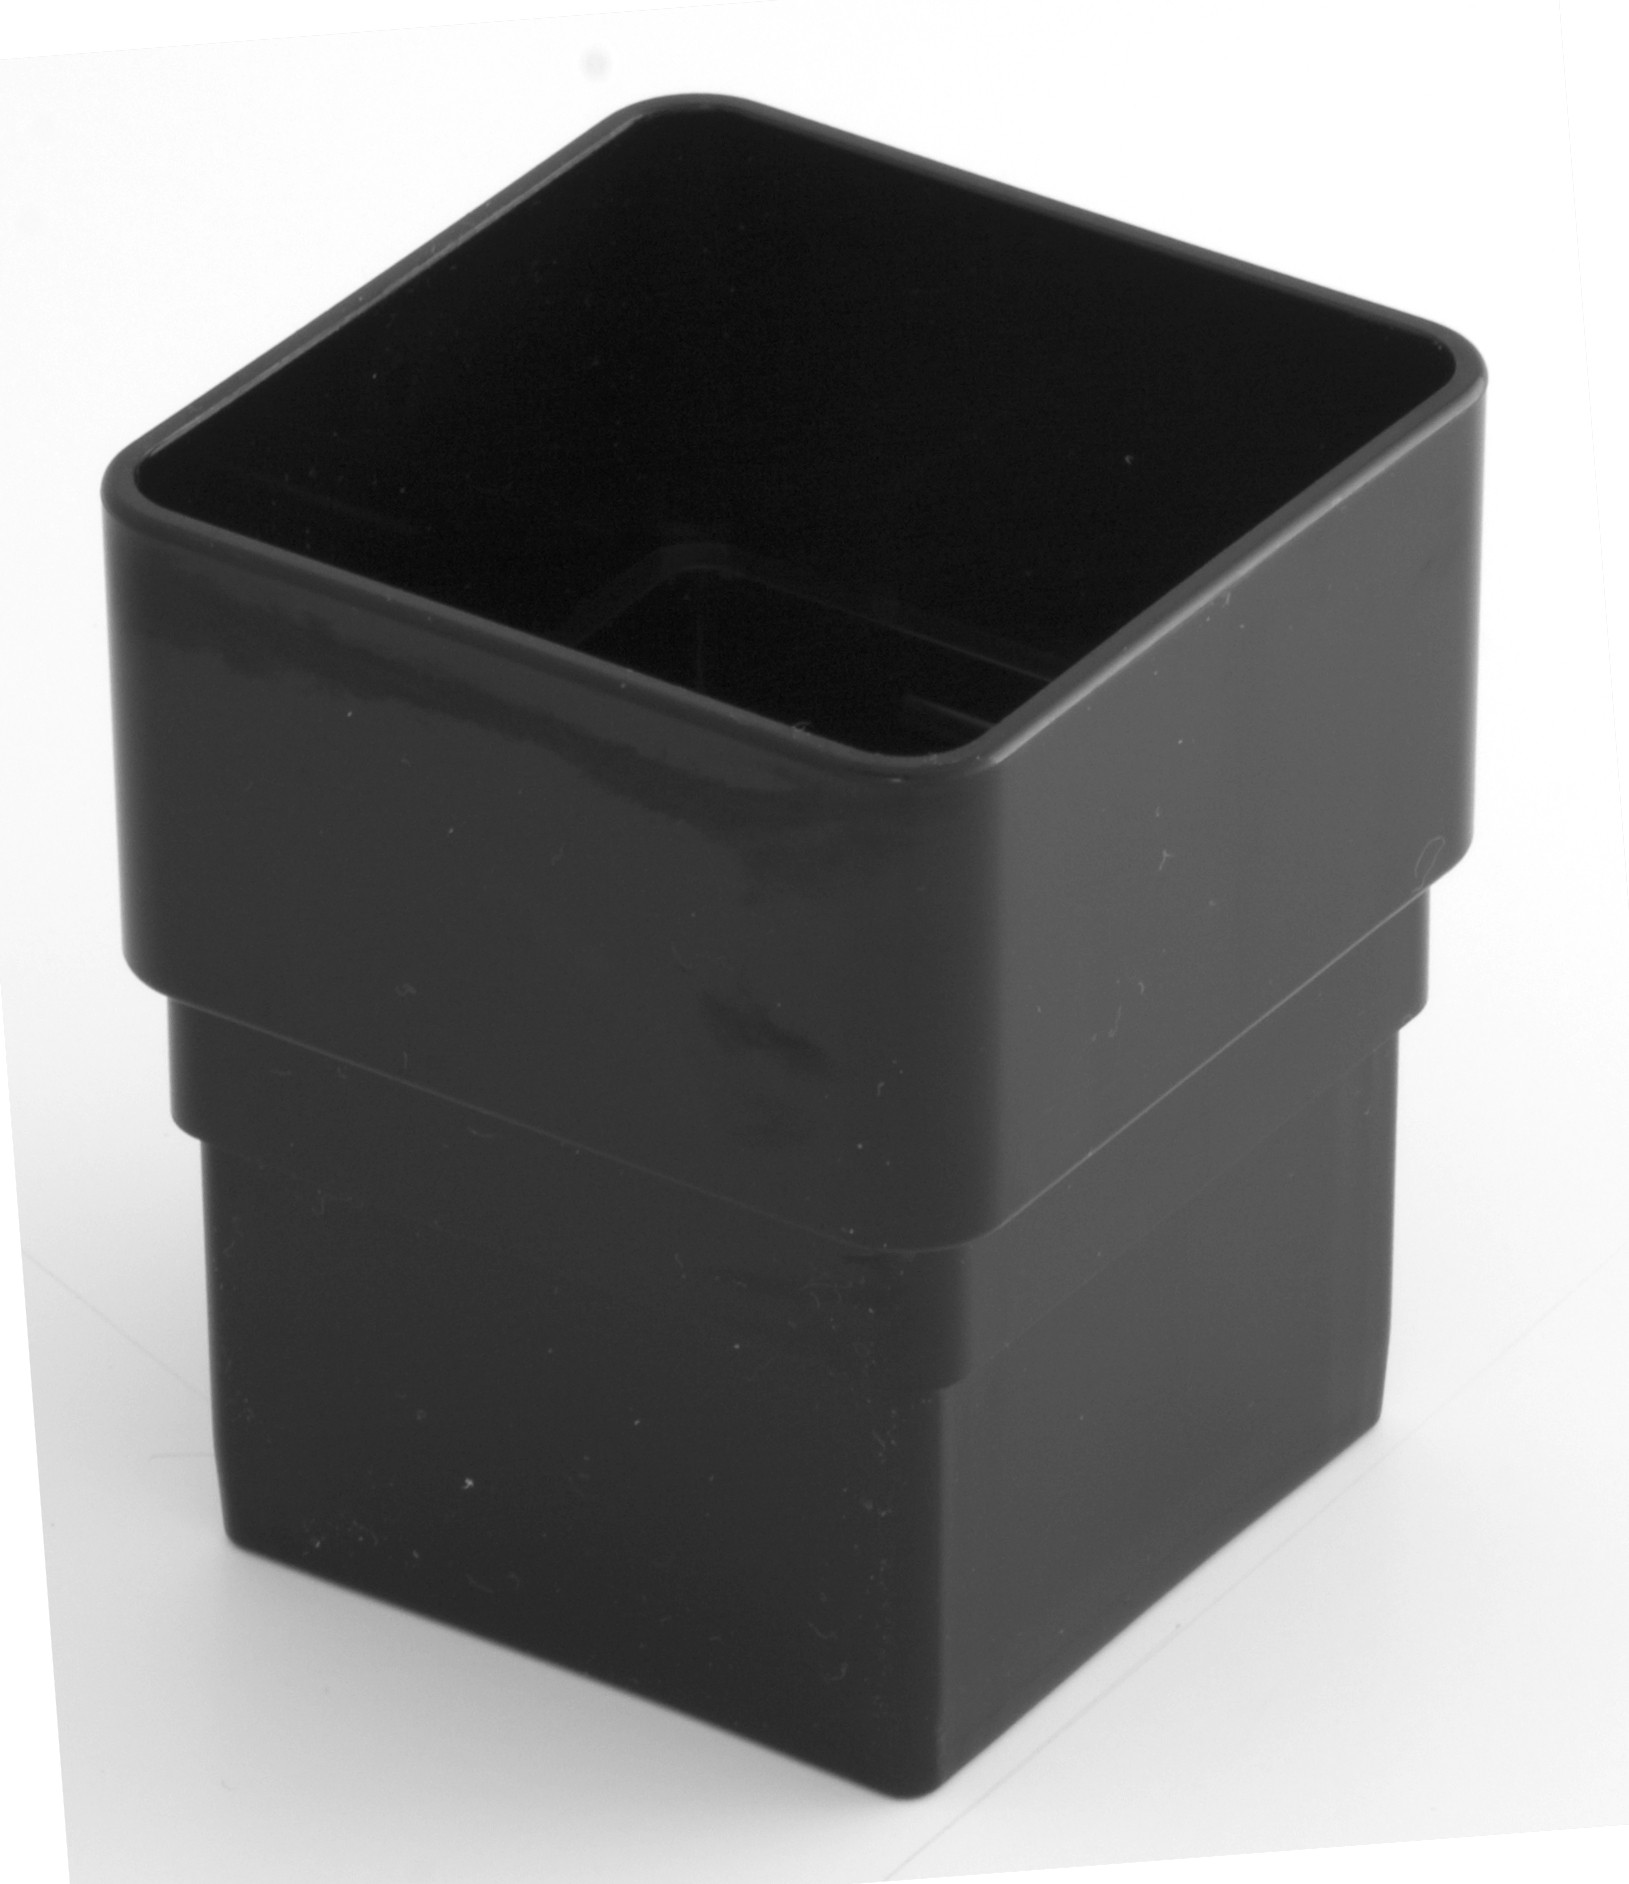 65mm Square Downpipe Connector Black Square Downpipes